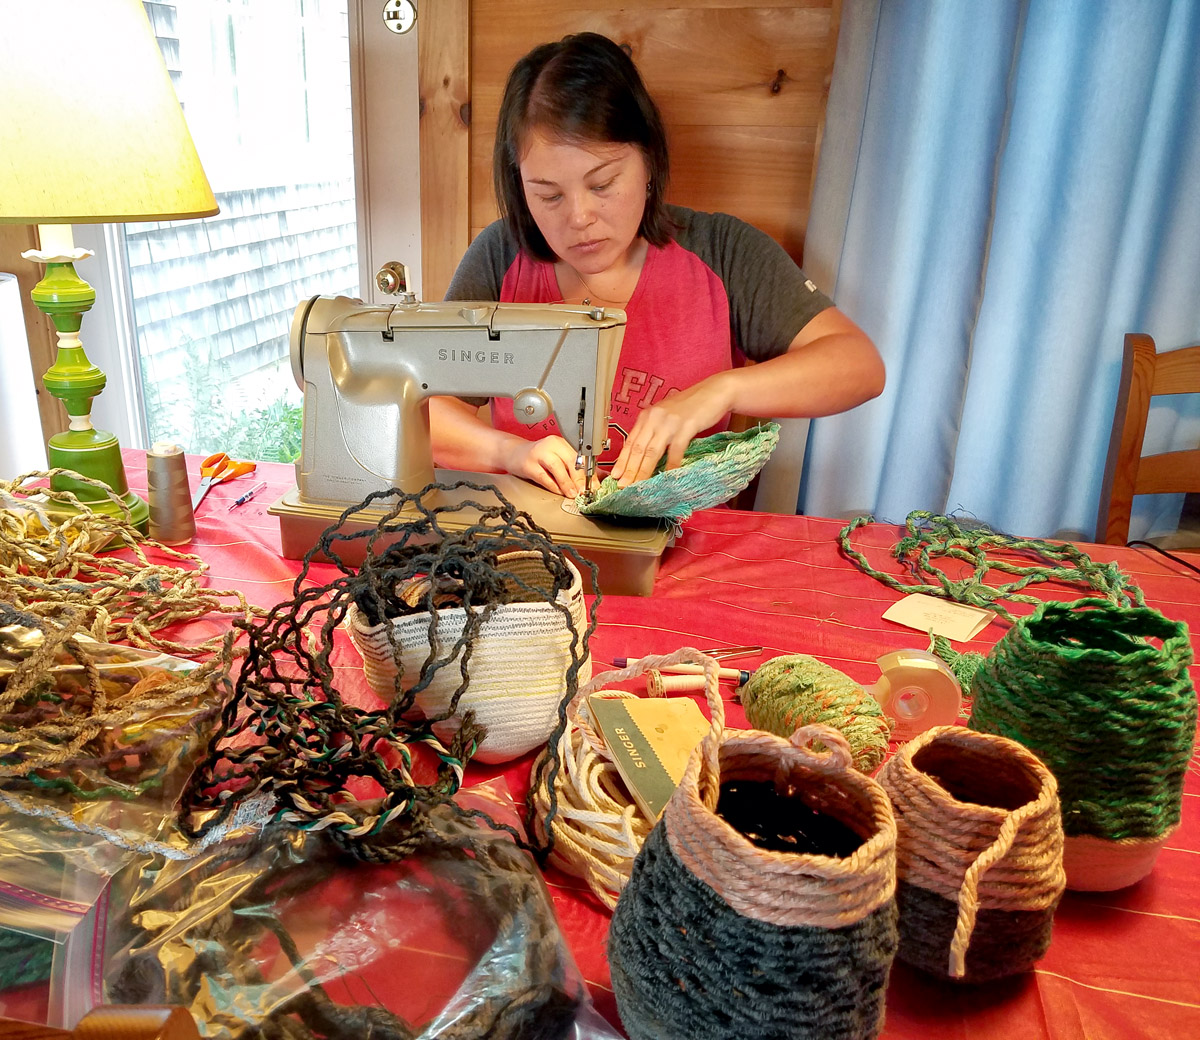 Artist Emily Miller making rope baskets, fiber art sculpture